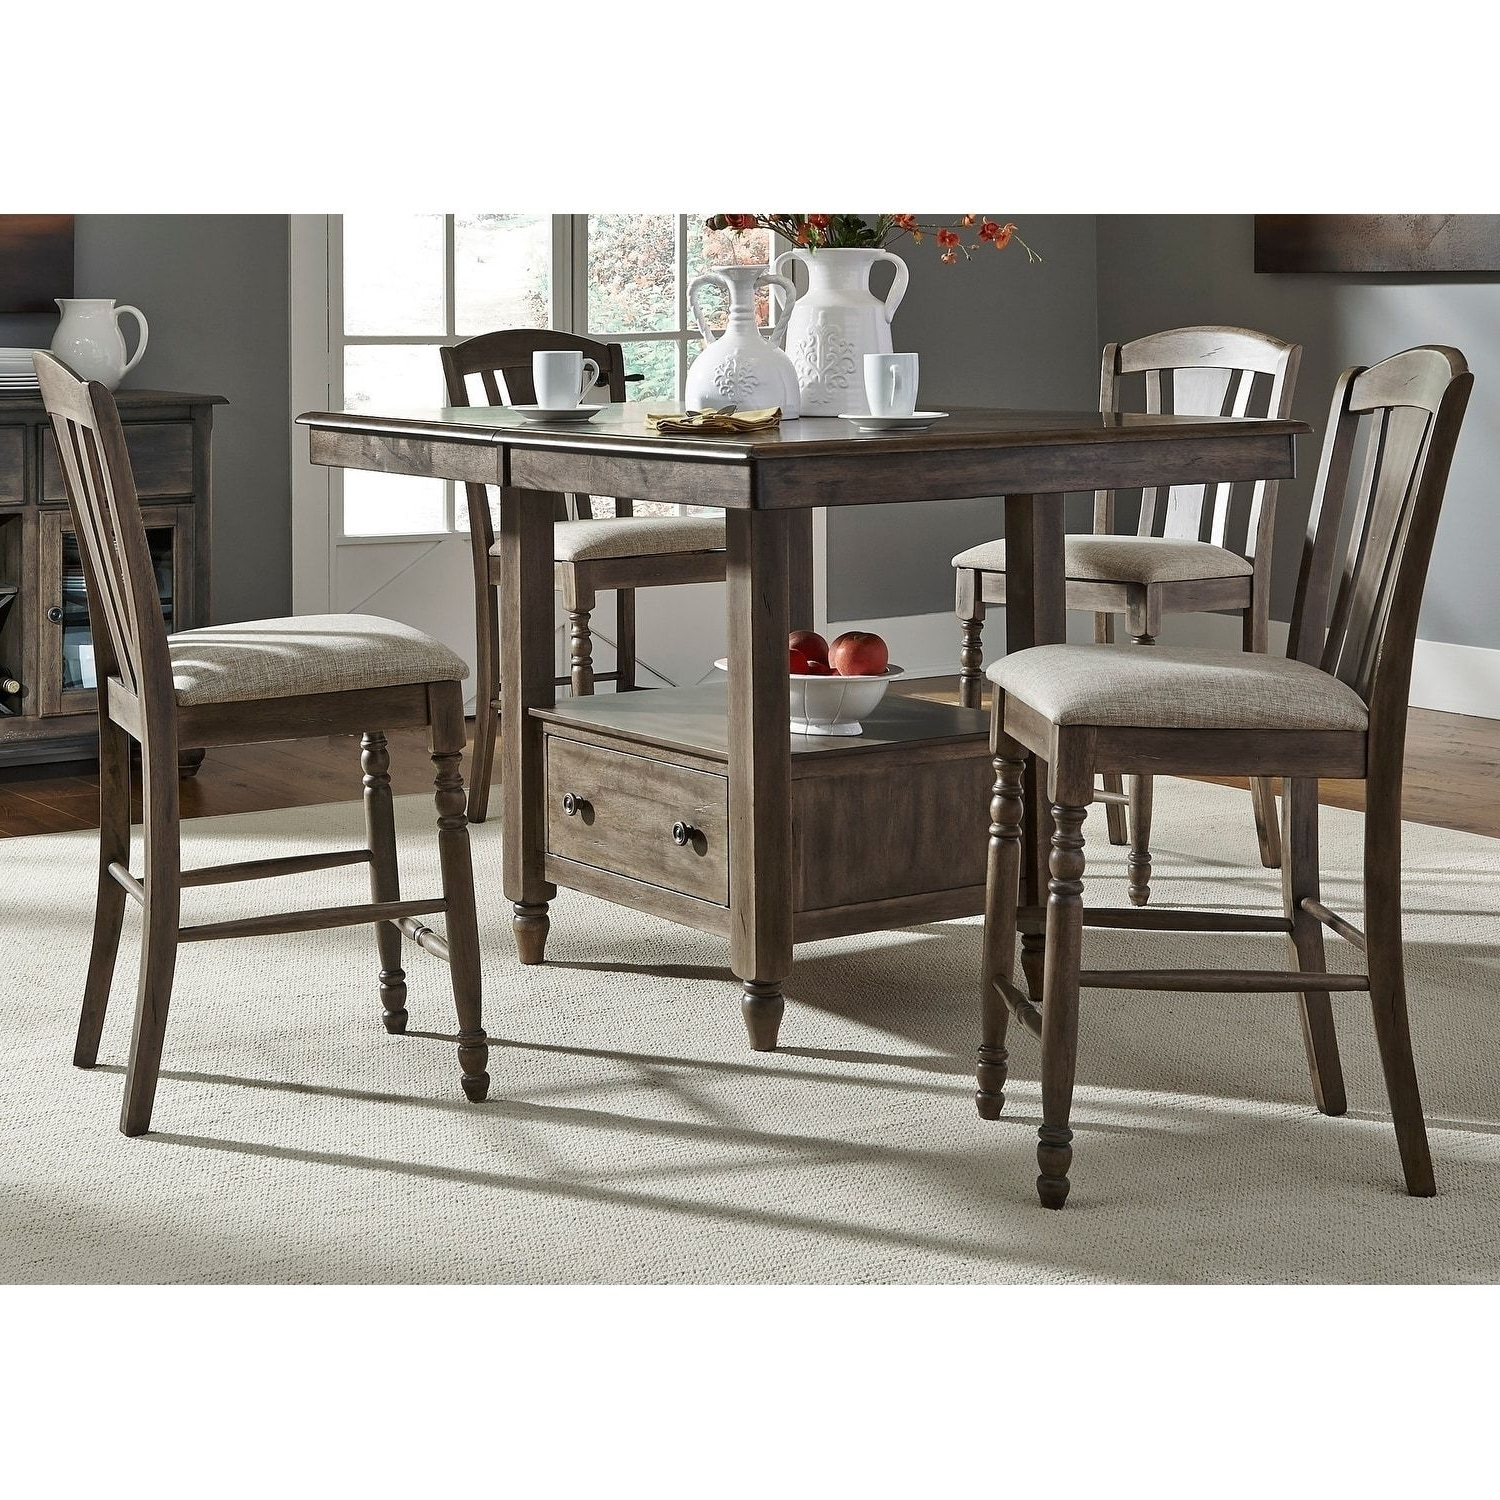 Well Liked Liberty Candlewood Weather Grey 7 Piece Slat Back Gathering Dinette Pertaining To Combs 7 Piece Dining Sets With  Mindy Slipcovered Chairs (View 25 of 25)